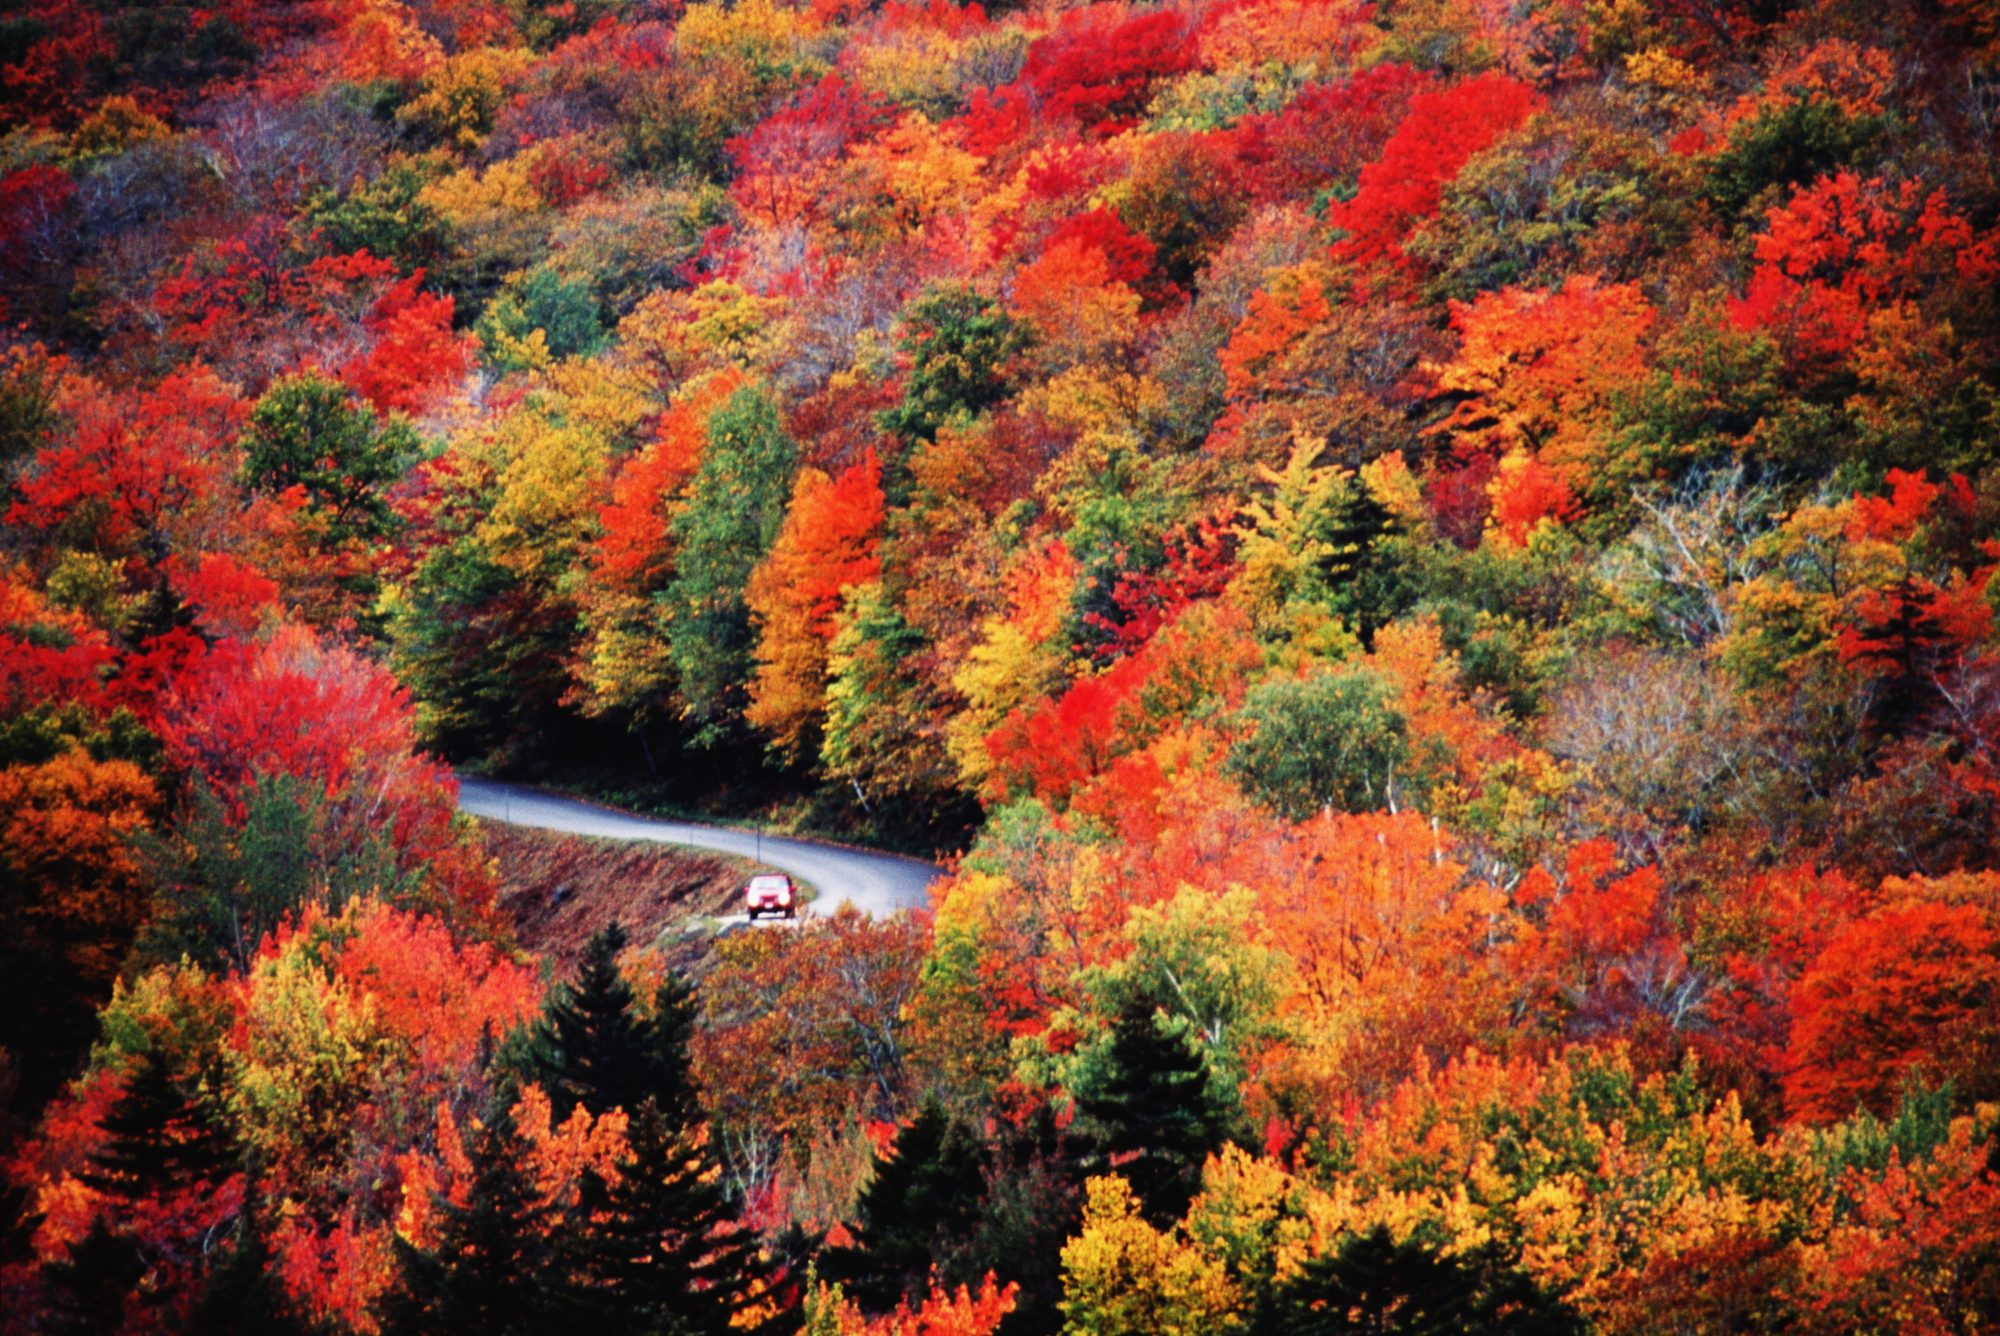 Peak Fall Foliage Will Likely Arrive Late This Year